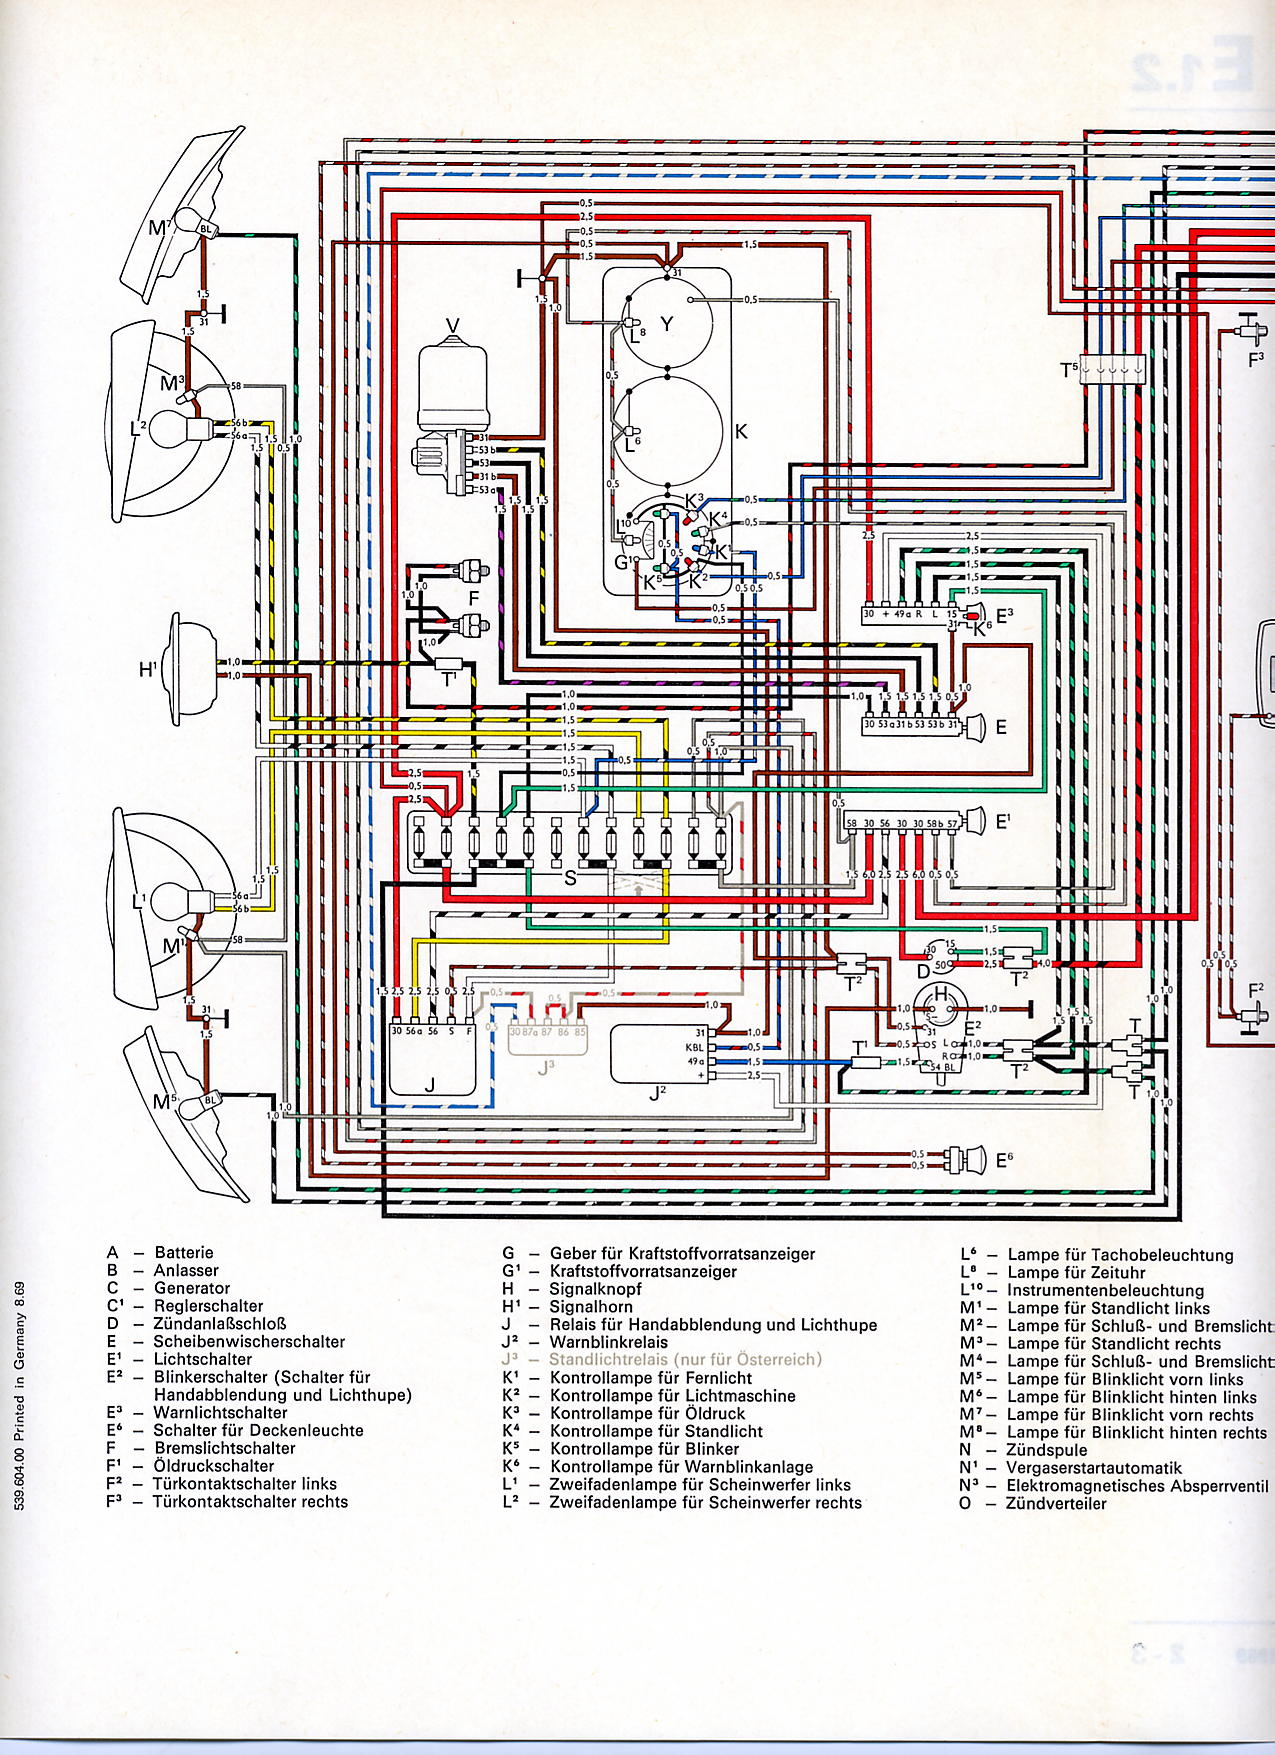 Vw Bus And Other Wiring Diagrams 1969 Ford F100 Fuse Box De Y 1 2